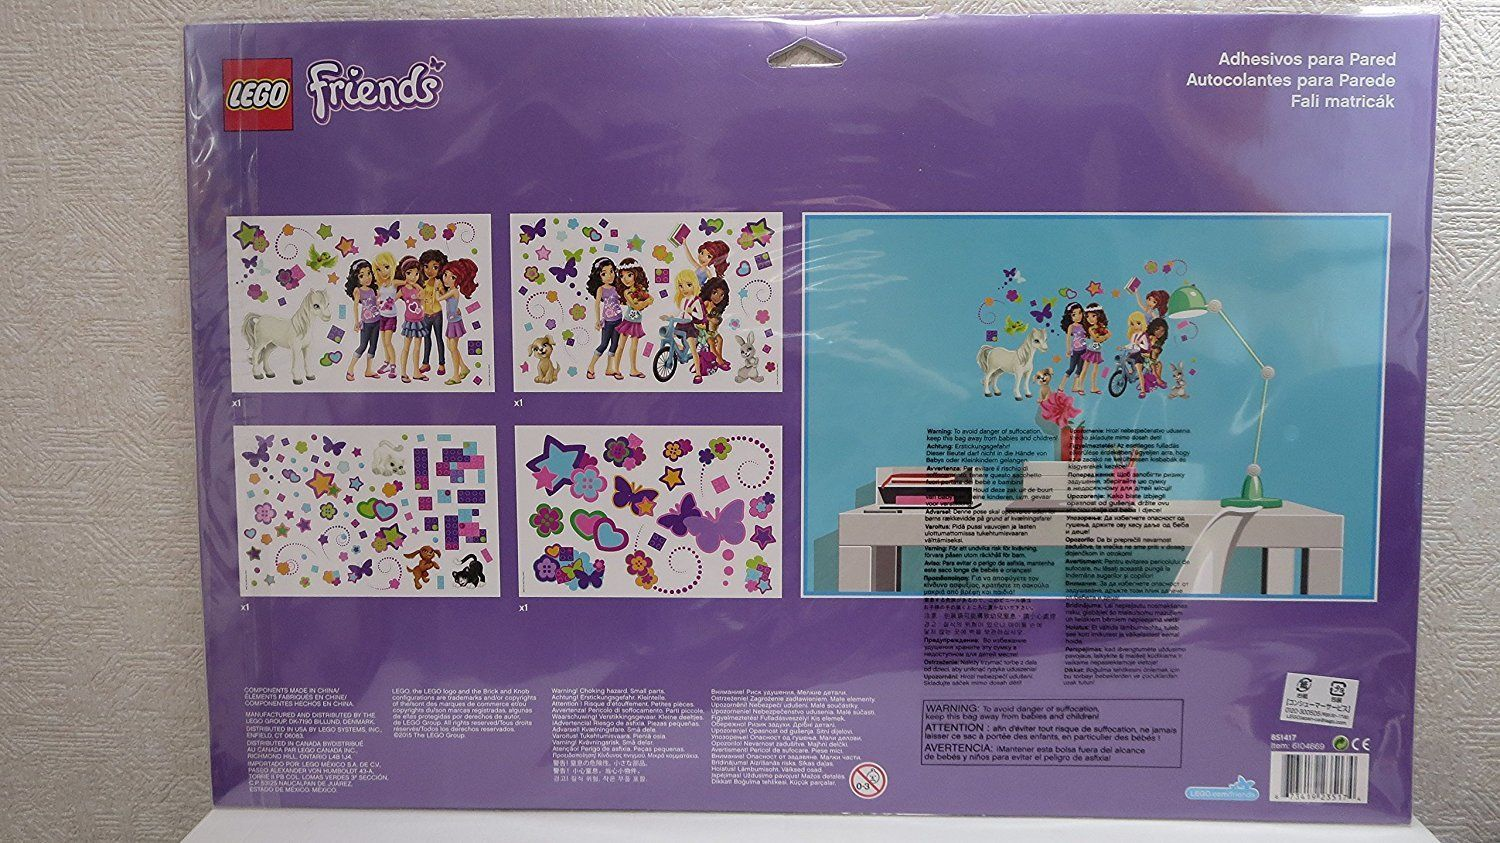 Lego Friends Wall Stickers 851417 Amazon.ca Toys & Games